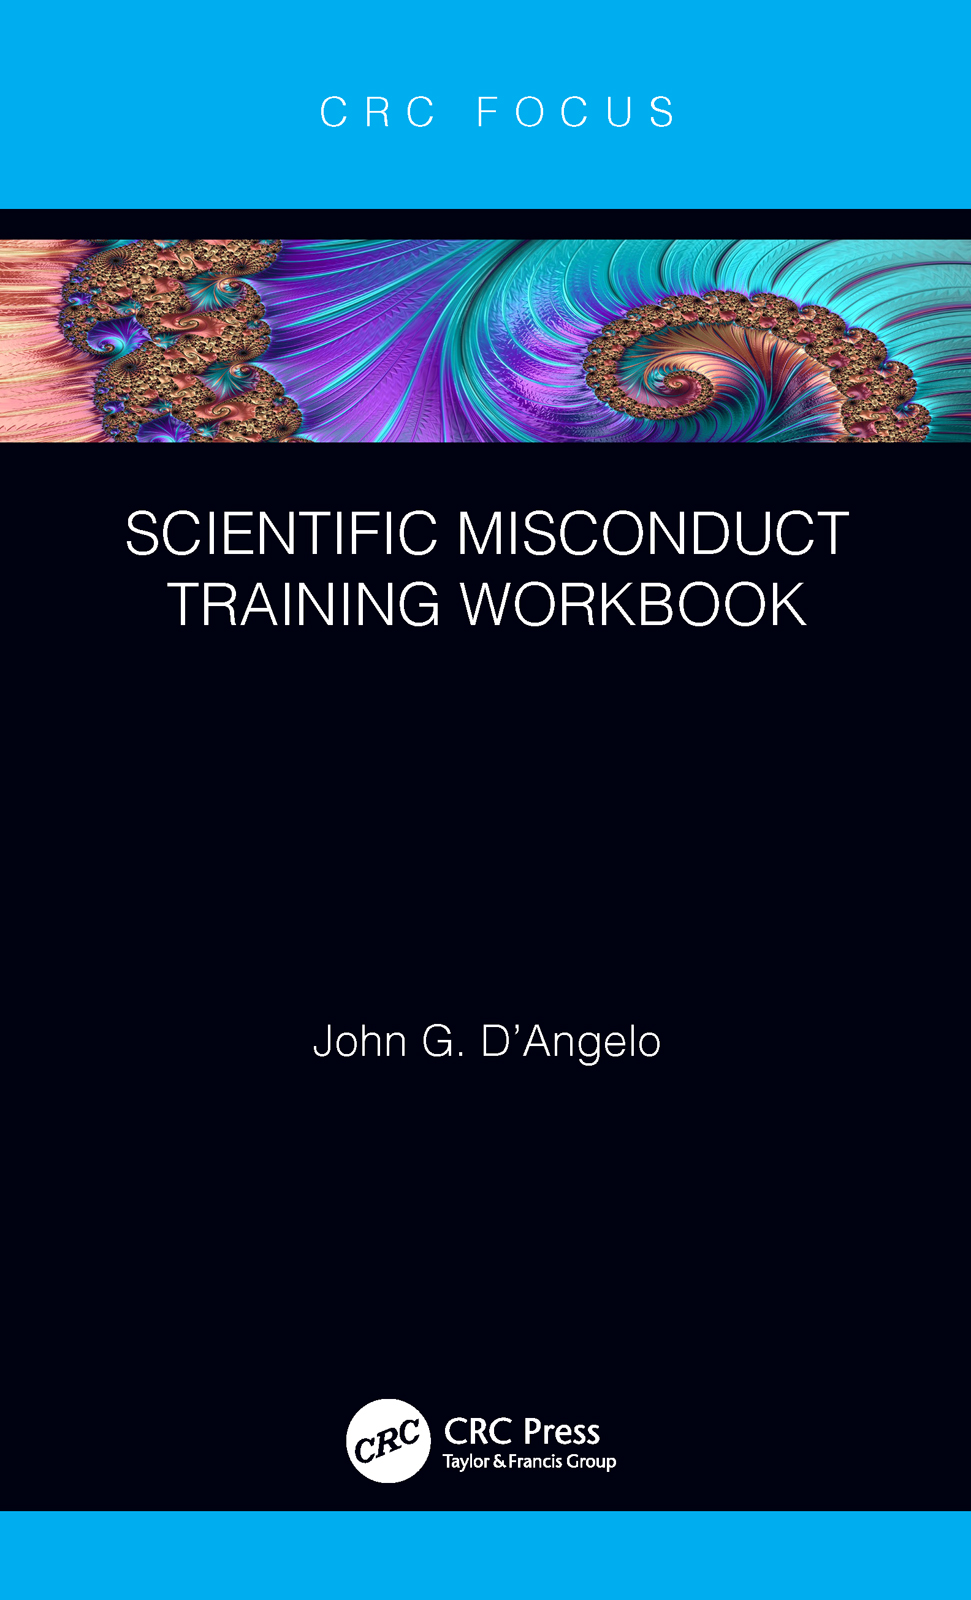 Scientific Misconduct Training Workbook book cover